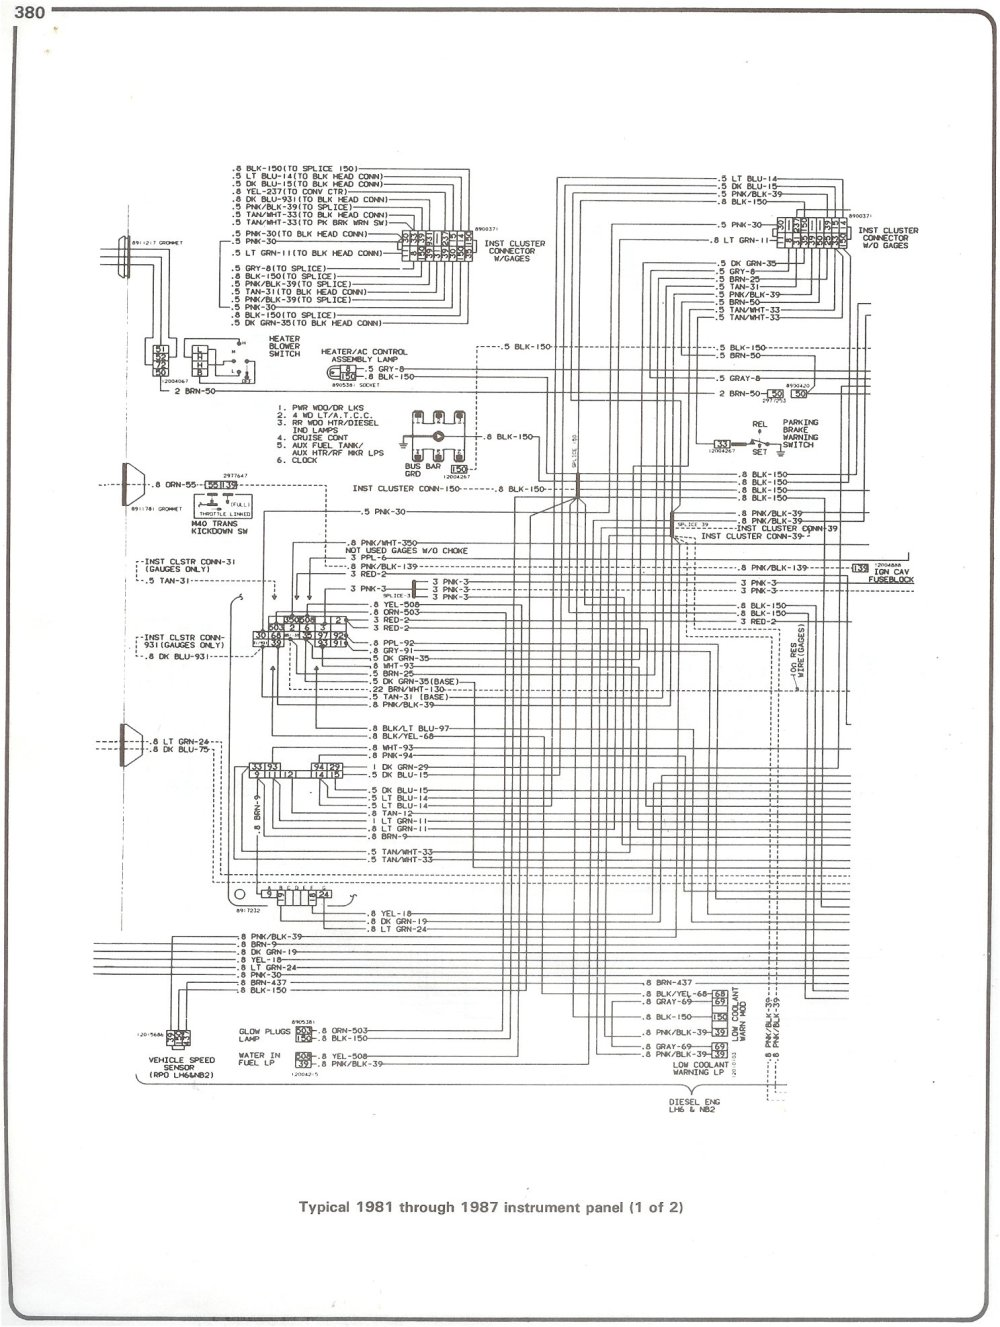 medium resolution of 1983 chevy van wiring harness on wiring diagram article review wiring diagrams for 1983 chevy van